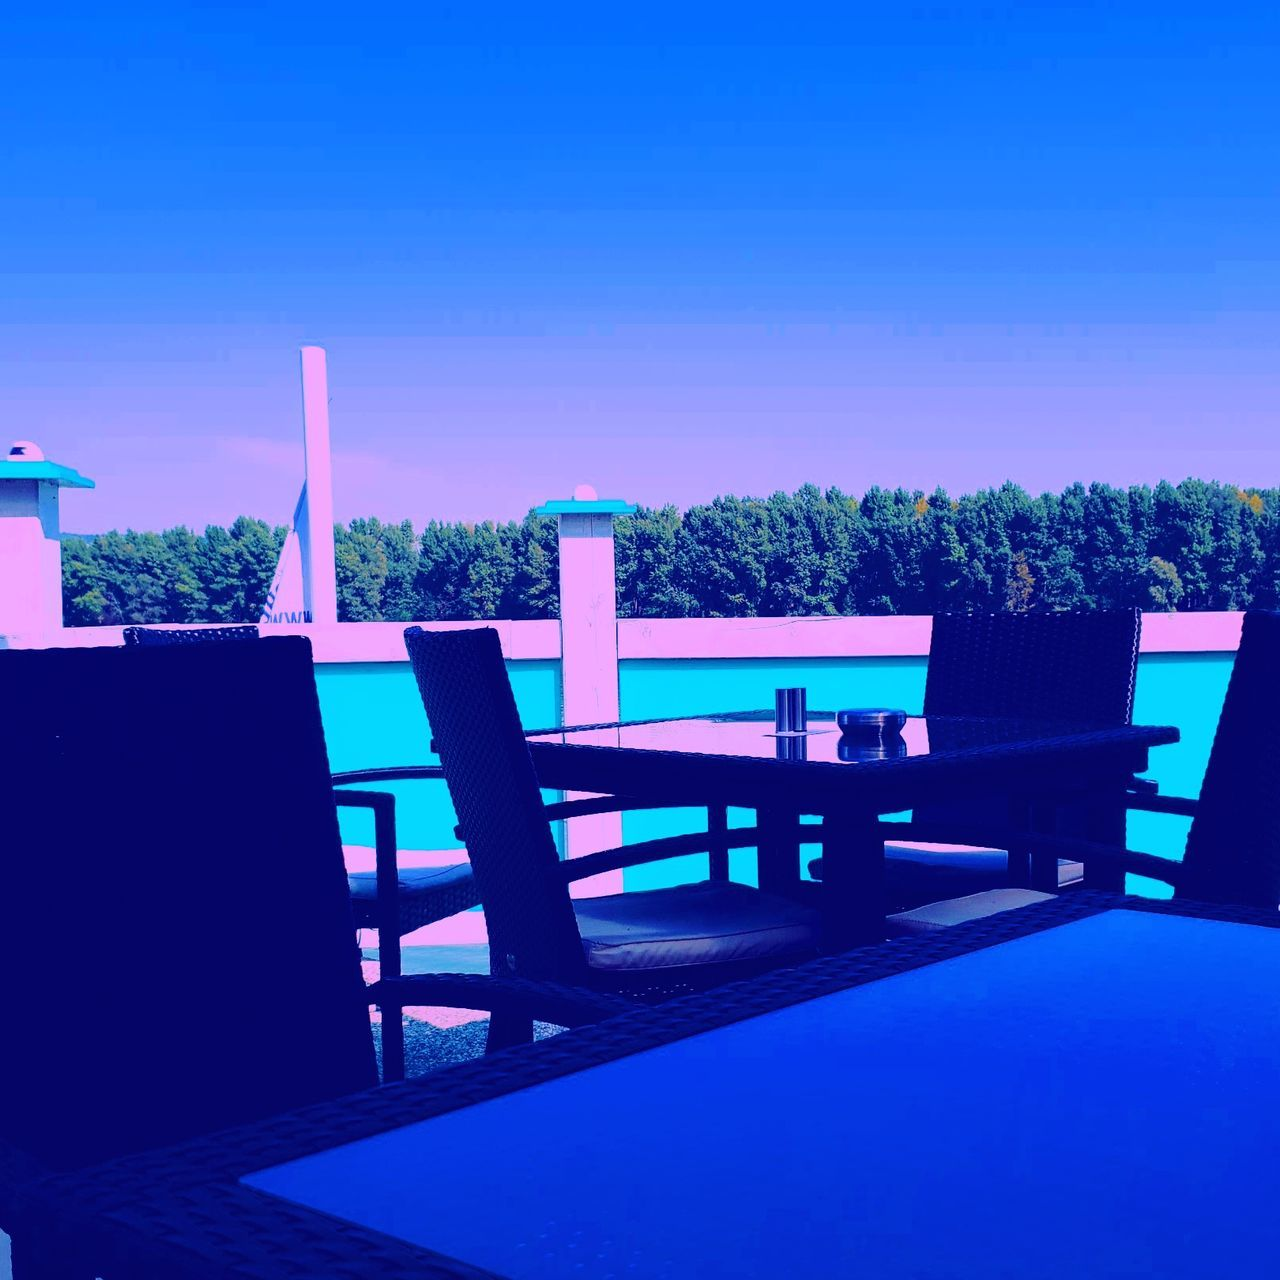 EMPTY CHAIRS AND TABLES AGAINST CLEAR BLUE SKY